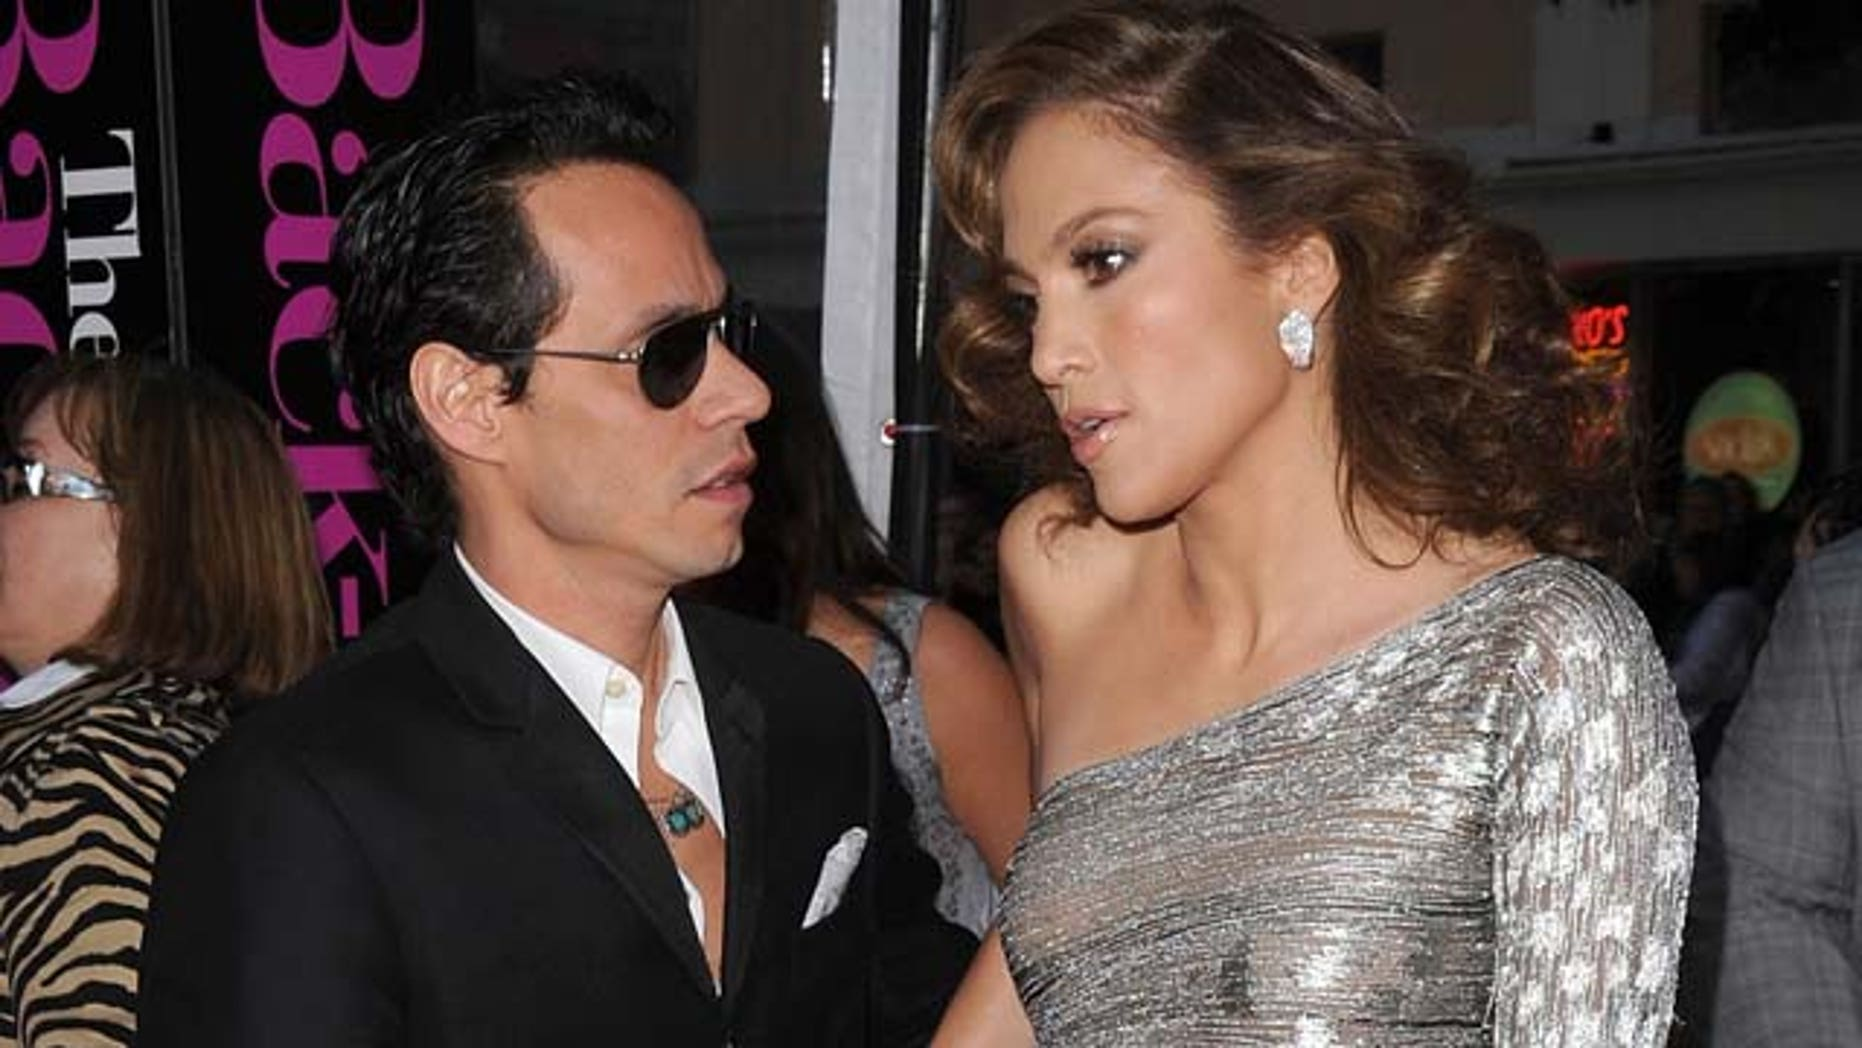 WESTWOOD, CA - APRIL 21:  Singer Marc Anthony (L) and actress Jennifer Lopez arrive at the premiere of CBS Films' 'The Back-up Plan' held at the Regency Village Theatre on April 21, 2010 in Westwood, California.  (Photo by Jason Merritt/Getty Images)